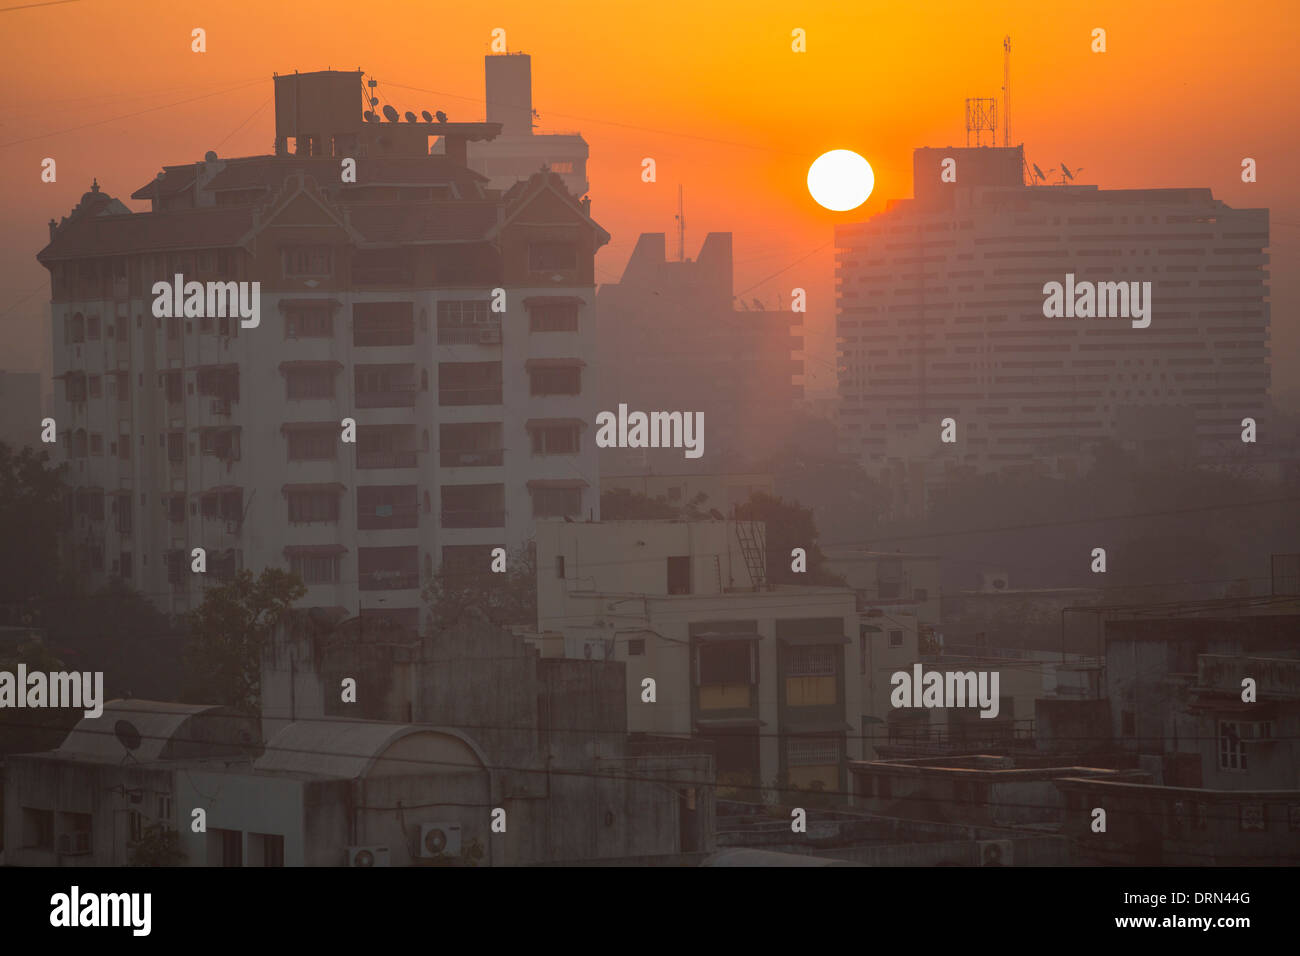 Sunrise over Ahmedabad; India, showing the poor air quality. - Stock Image